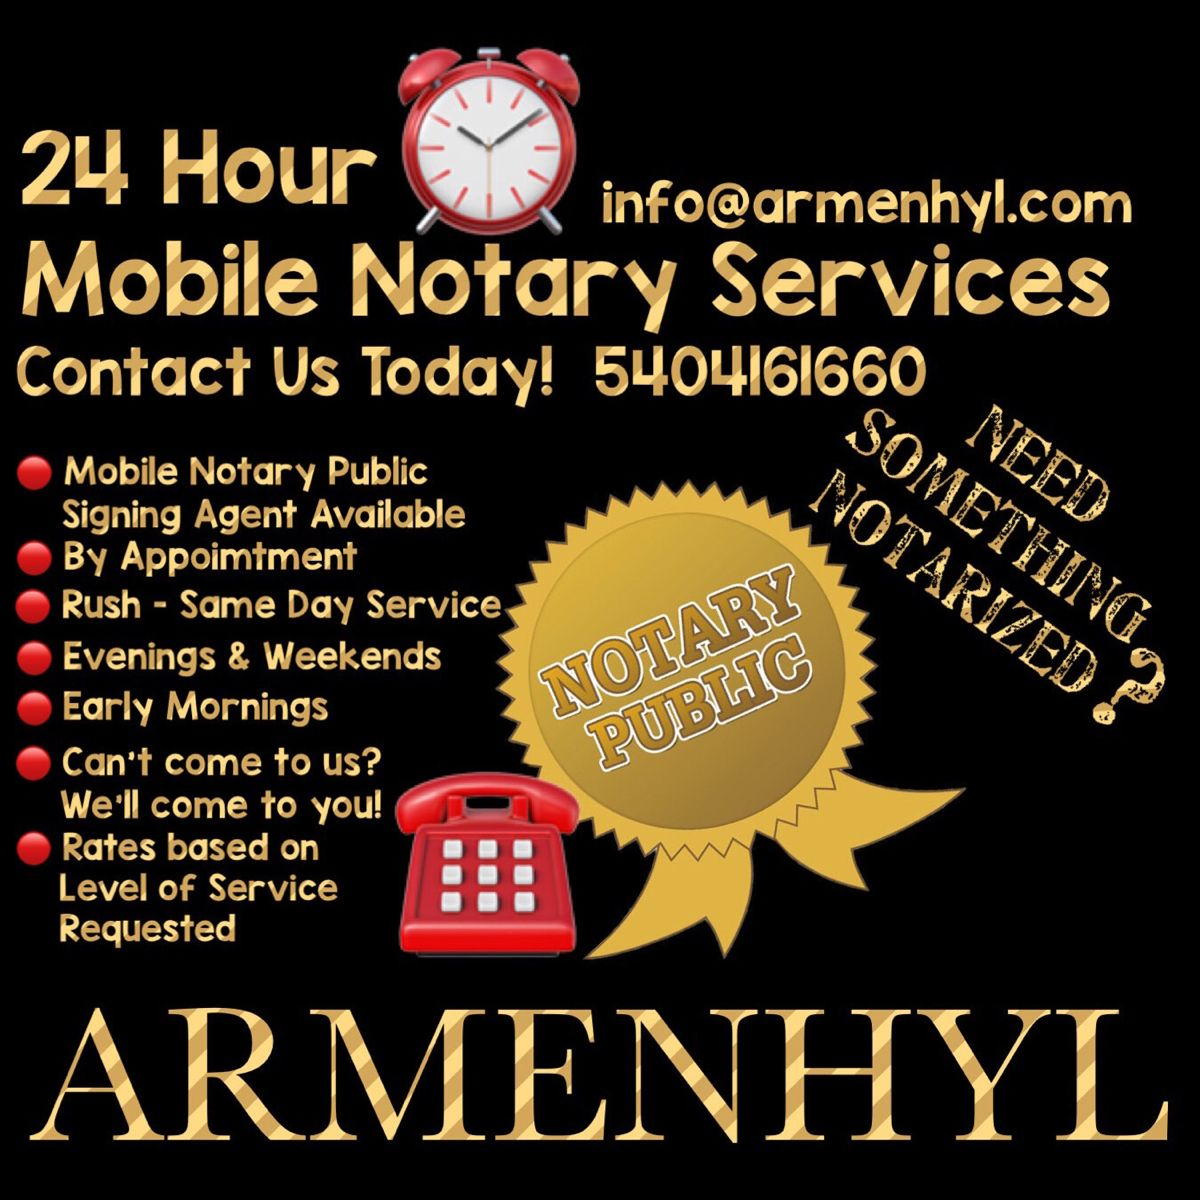 Armenhyl Group Llc Mobile Notary Public Service Notary Signing Agent Mobile Notary Notary Public Notary Signing Agent